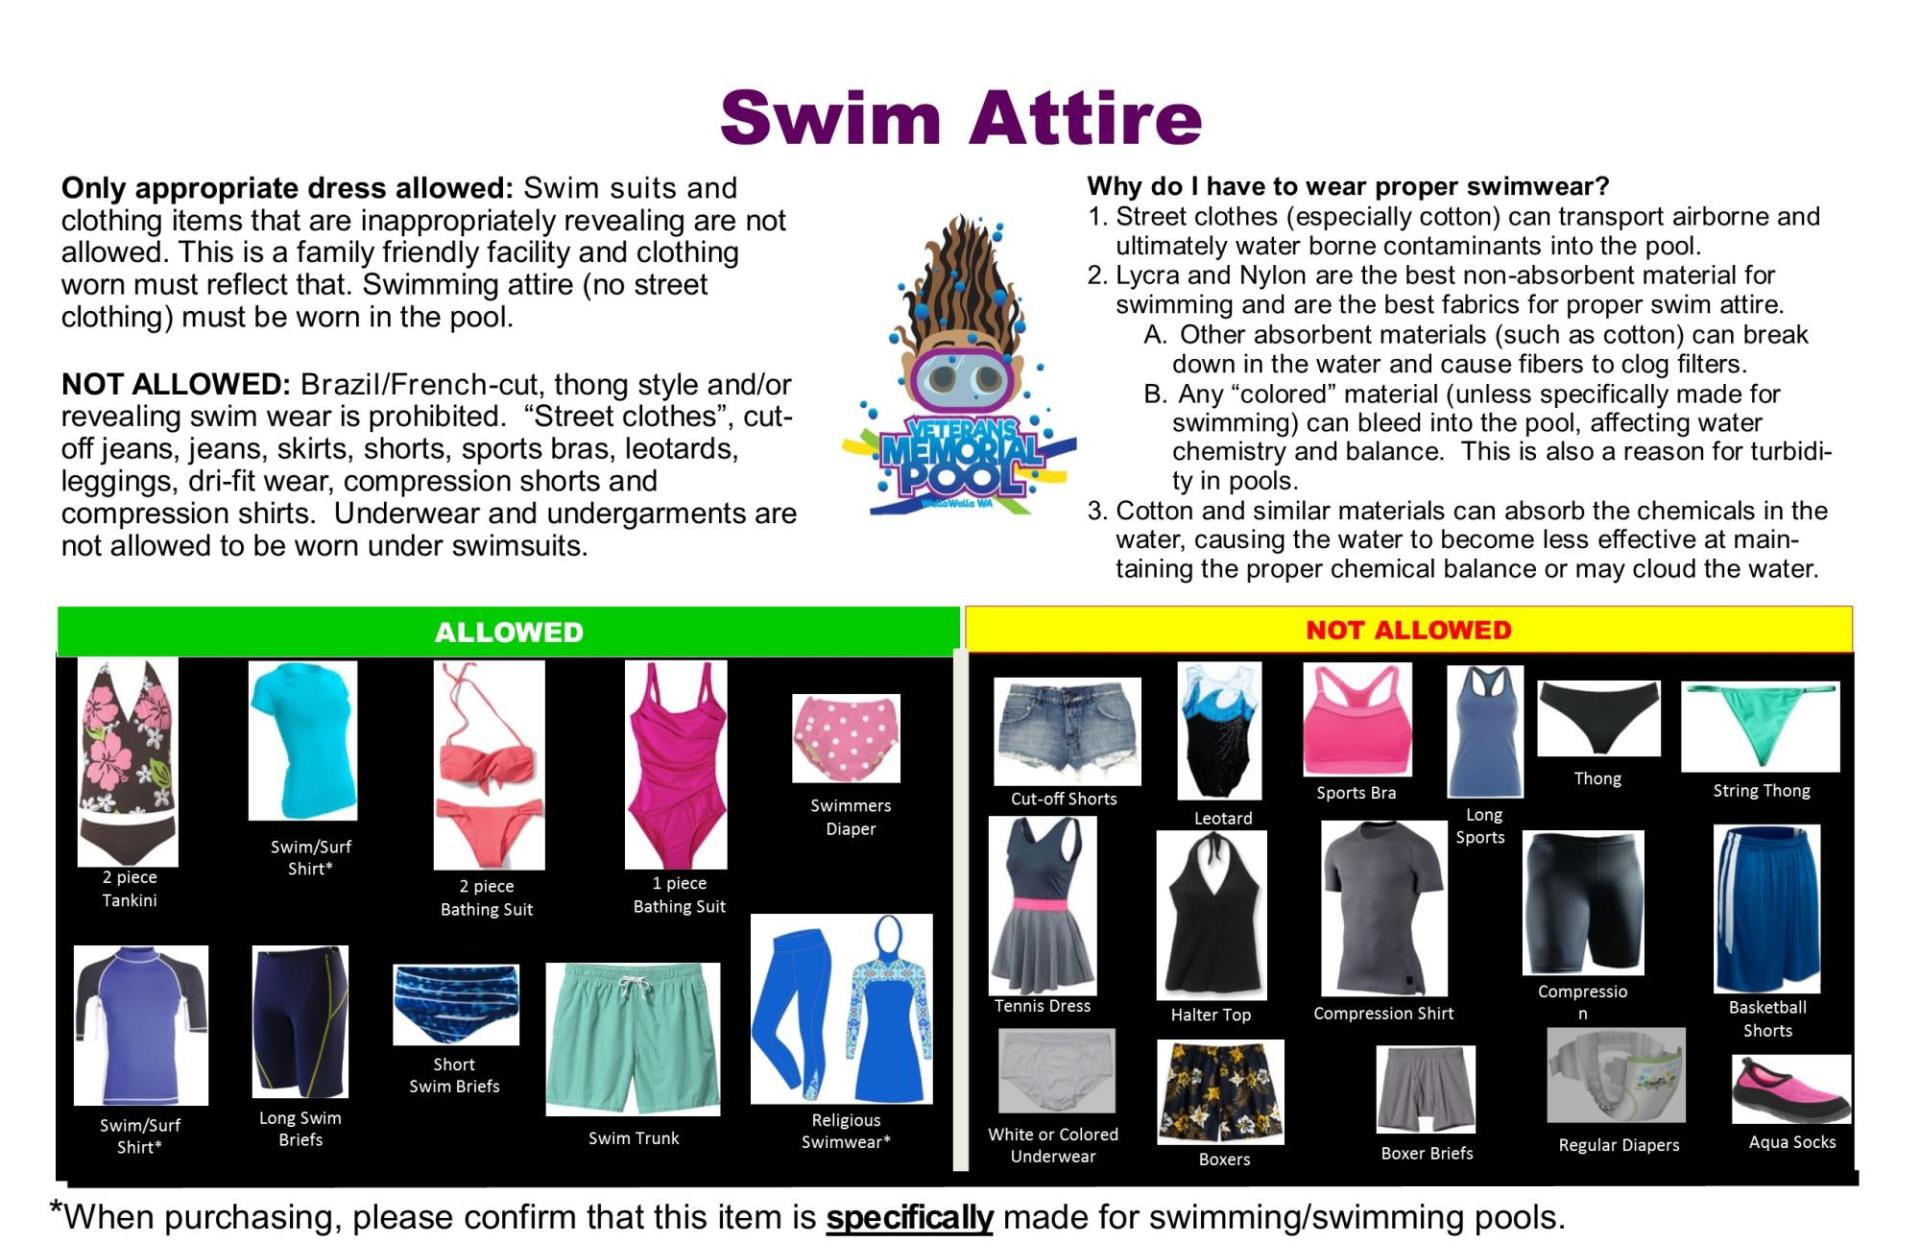 swim attire brochure